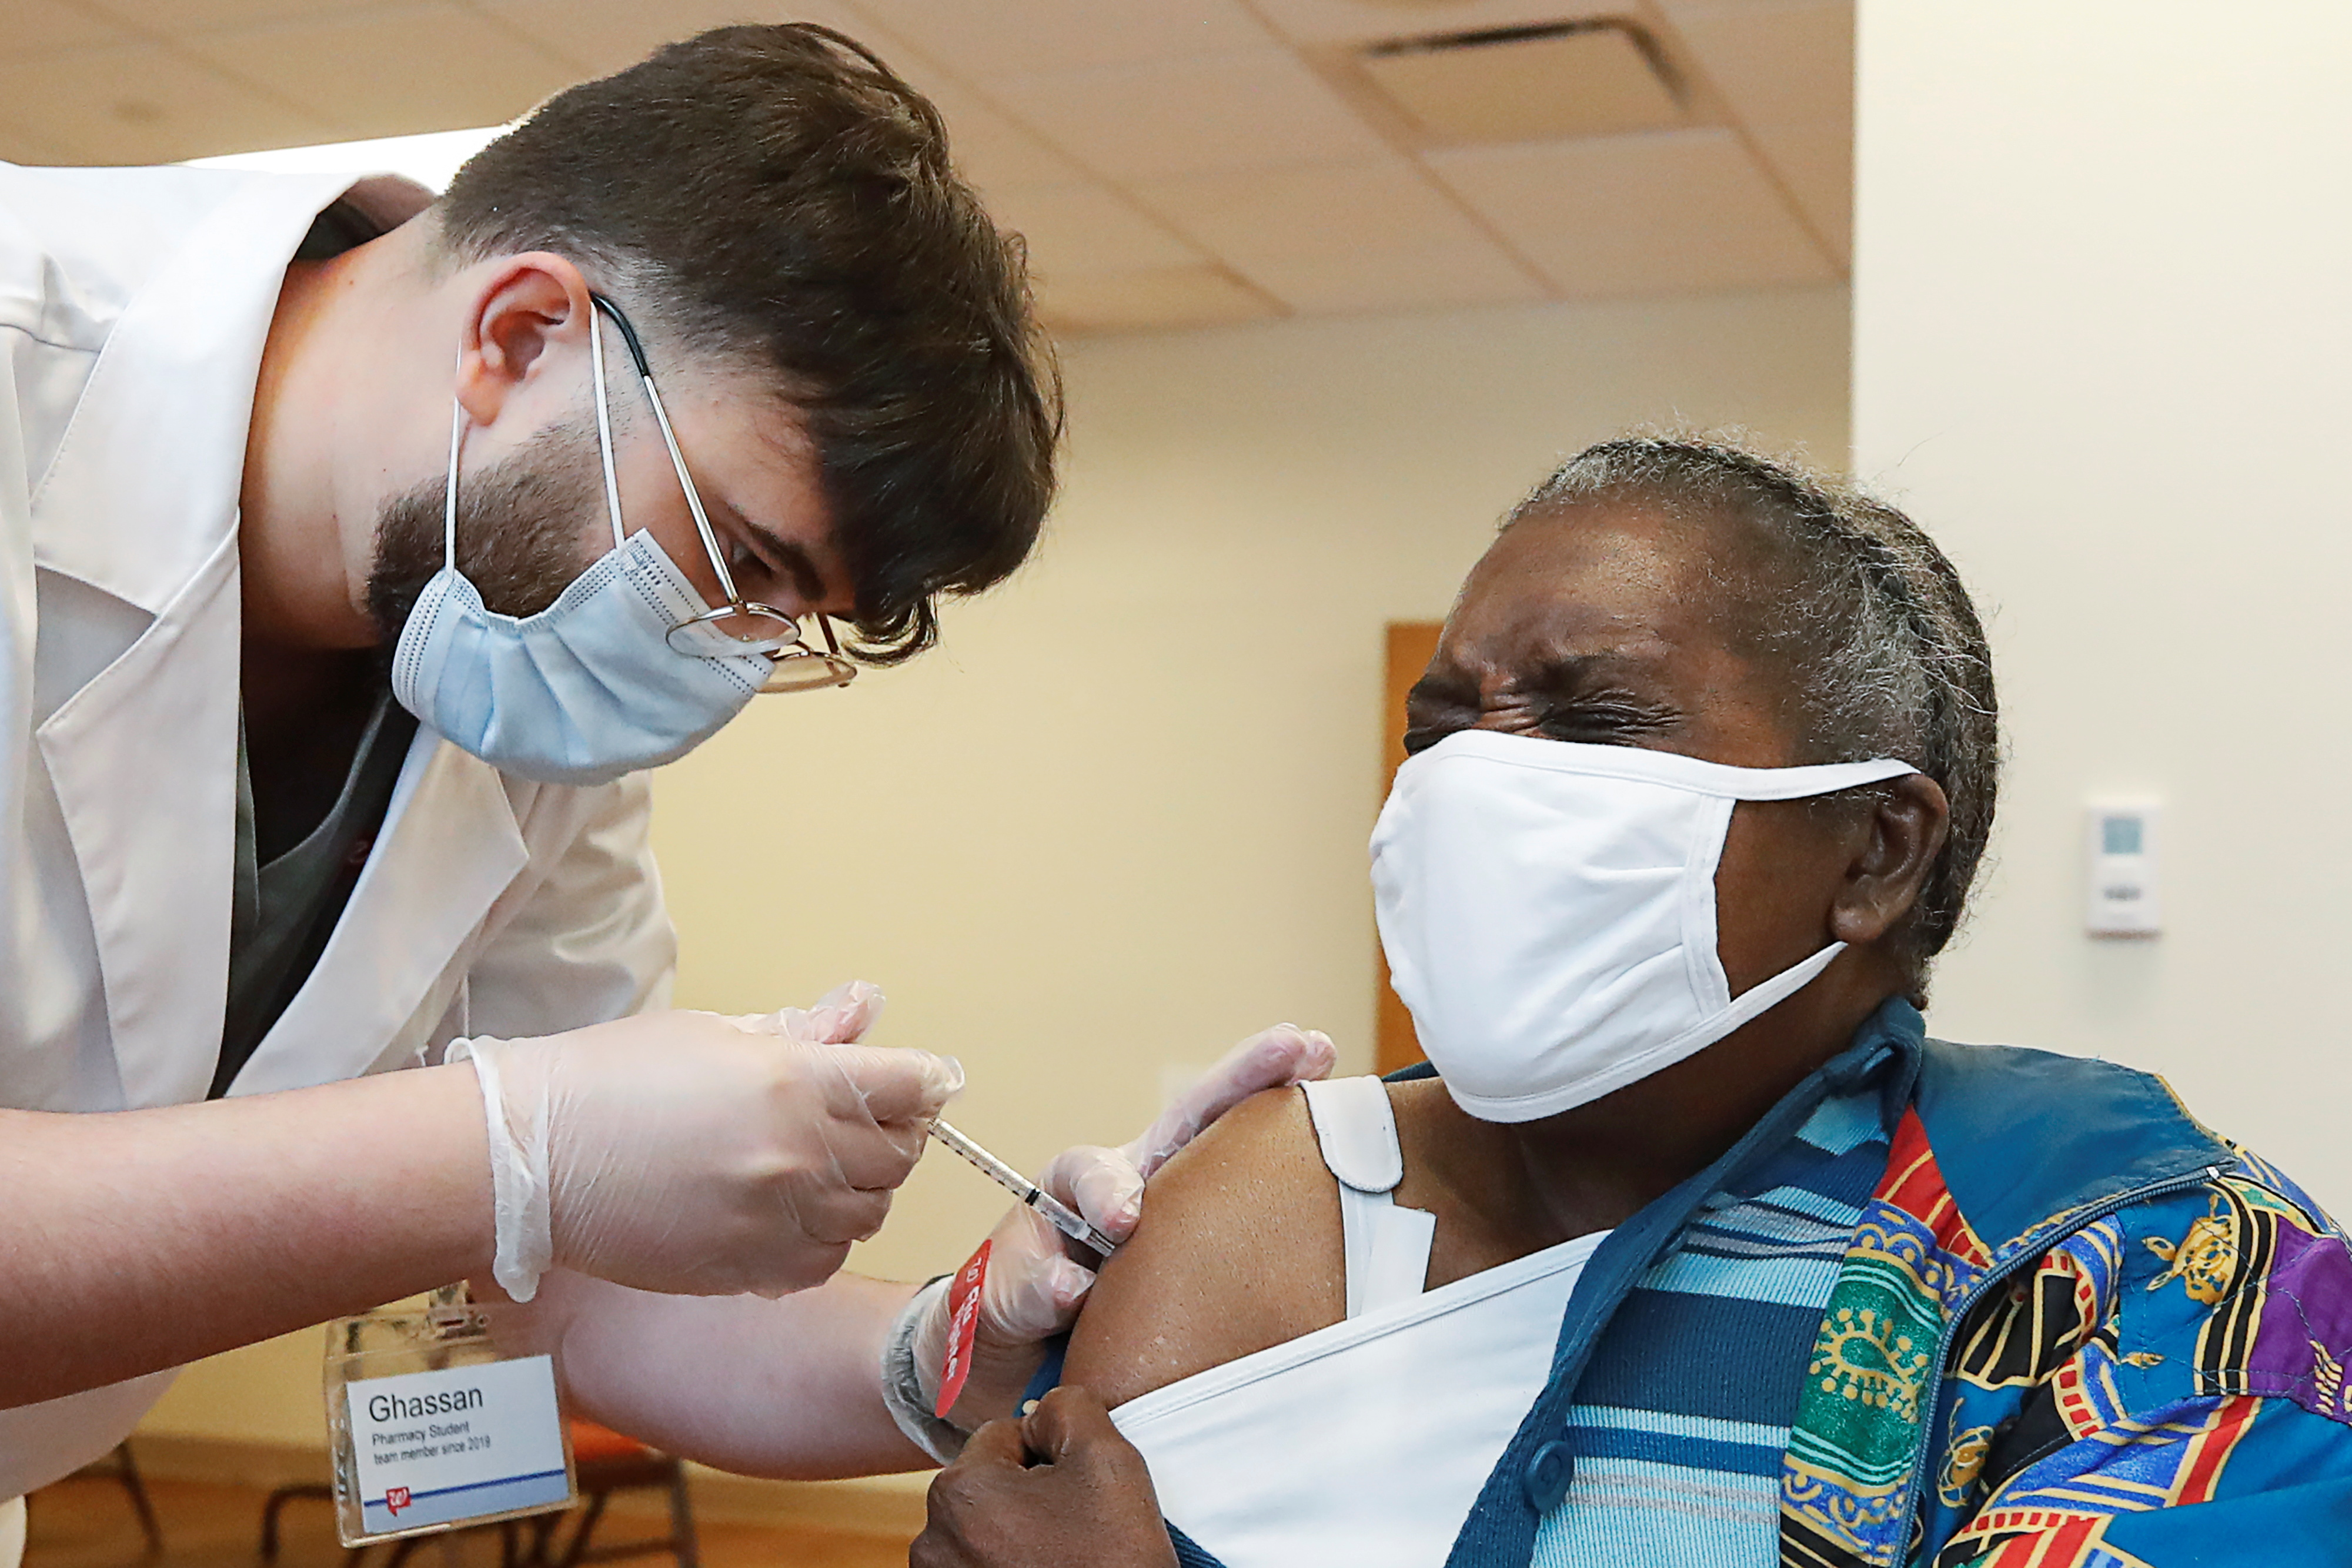 Lillie McCray (R) receives the  Pfizer-BioNTech vaccine against coronavirus disease (COVID-19) from Walgreens healthcare professional Ghassan Ayyad (L) at the Victor Walchirk Apartments in Evanston, Illinois, U.S. February 22, 2021.  REUTERS/Kamil Krzaczynski